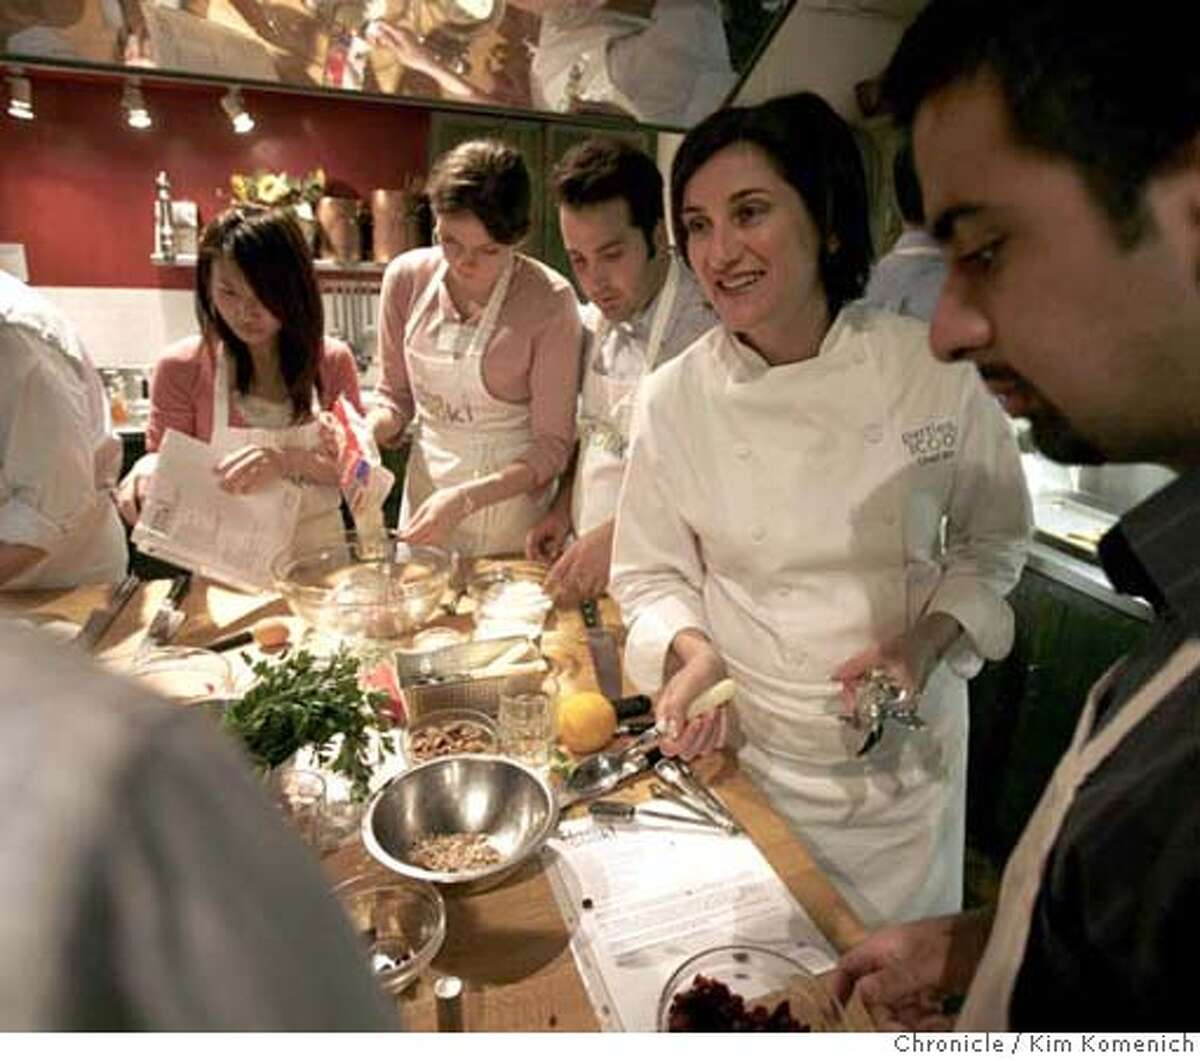 .JPG For our feature on offbeat food-related businesses we visit Sur La Table on Maiden Lane where the summer interns from Protiviti join in a team-building cooking class. Chef Bibby Gignilliat, second from right, teaches as students prepare their dishes. Photo by Kim Komenich/The Chronicle **Bibby Gignilliat MANDATORY CREDIT FOR PHOTOG AND SAN FRANCISCO CHRONICLE. NO SALES- MAGS OUT.